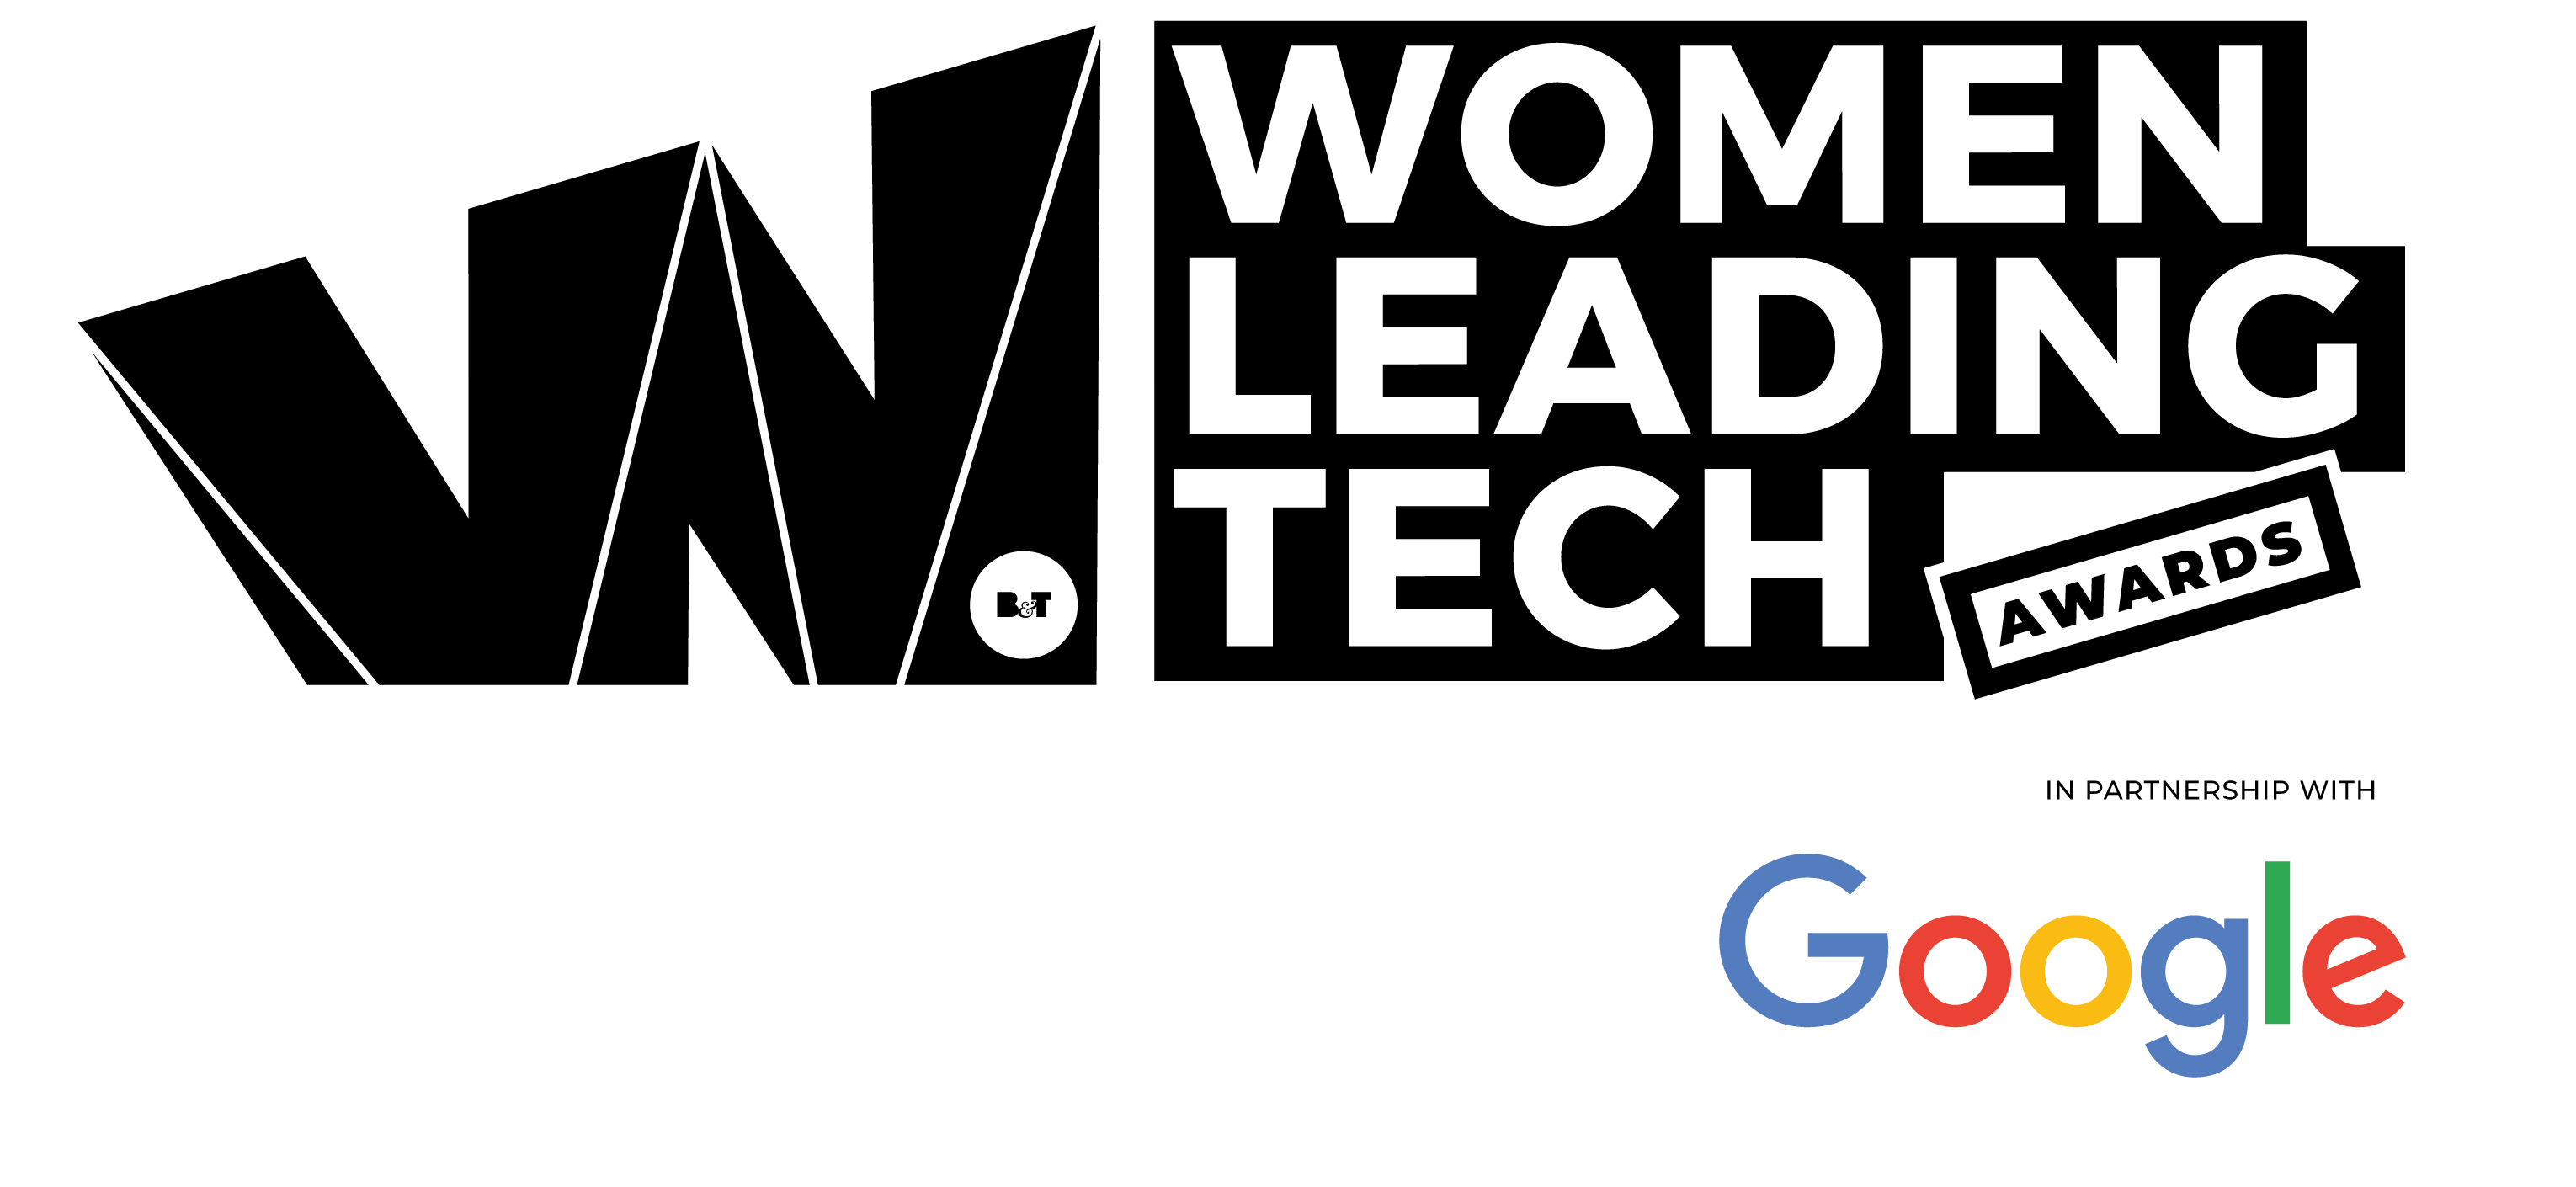 Women Leading tech awards in partnership with Google